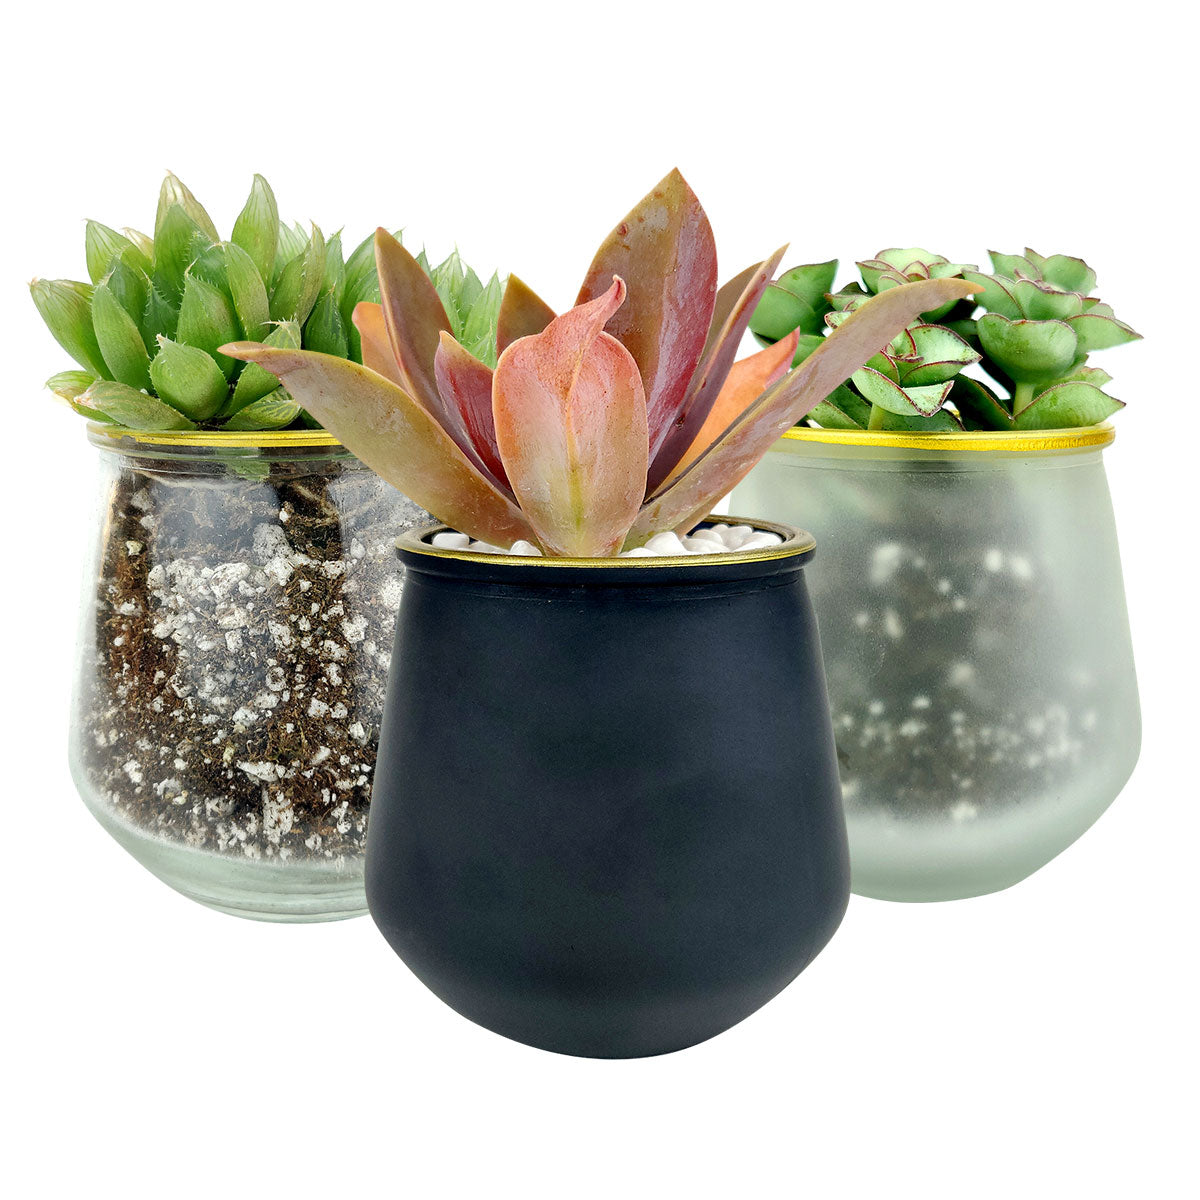 Pots For Succulent Growing Succulents In Containers Succulent Home Decor Ideas Page 2 Succulents Box